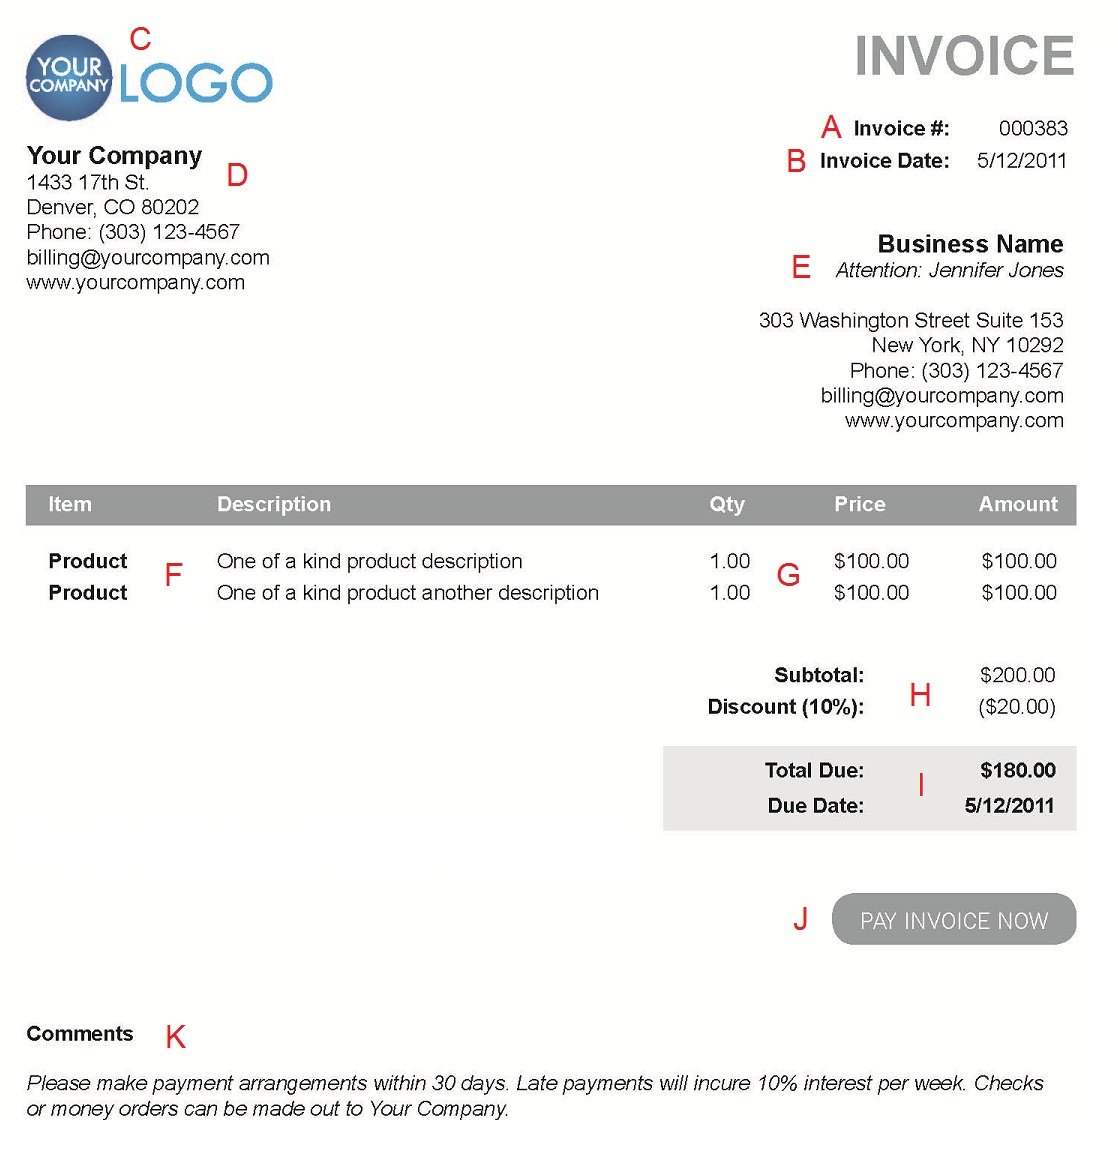 Garygrubbsus  Inspiring The  Different Sections Of An Electronic Payment Invoice With Engaging A  With Astounding Example Receipt Template Also Computer Receipt Template In Addition Receipt For Cake And Receipting Process As Well As Acknowledgement Receipts Additionally Receipt Wording From Paysimplecom With Garygrubbsus  Engaging The  Different Sections Of An Electronic Payment Invoice With Astounding A  And Inspiring Example Receipt Template Also Computer Receipt Template In Addition Receipt For Cake From Paysimplecom